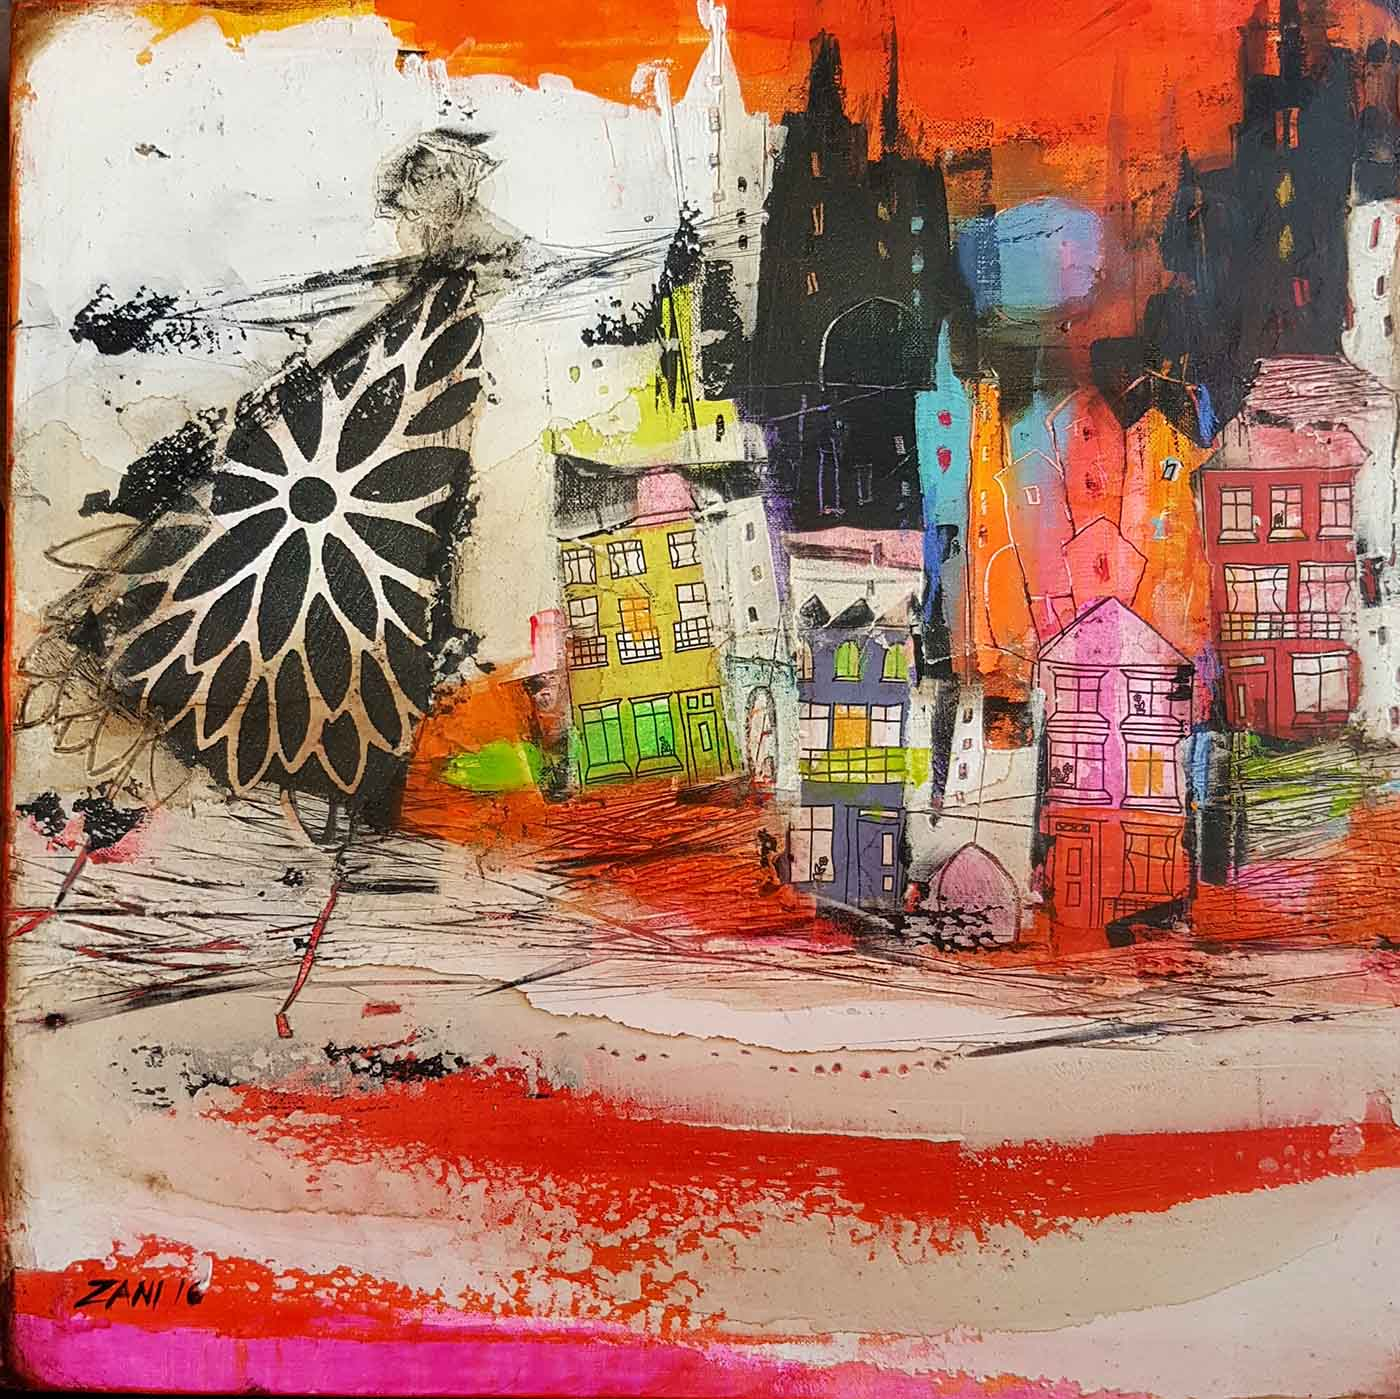 Colourful town, 40cm x 40cm, acrylic on canvas